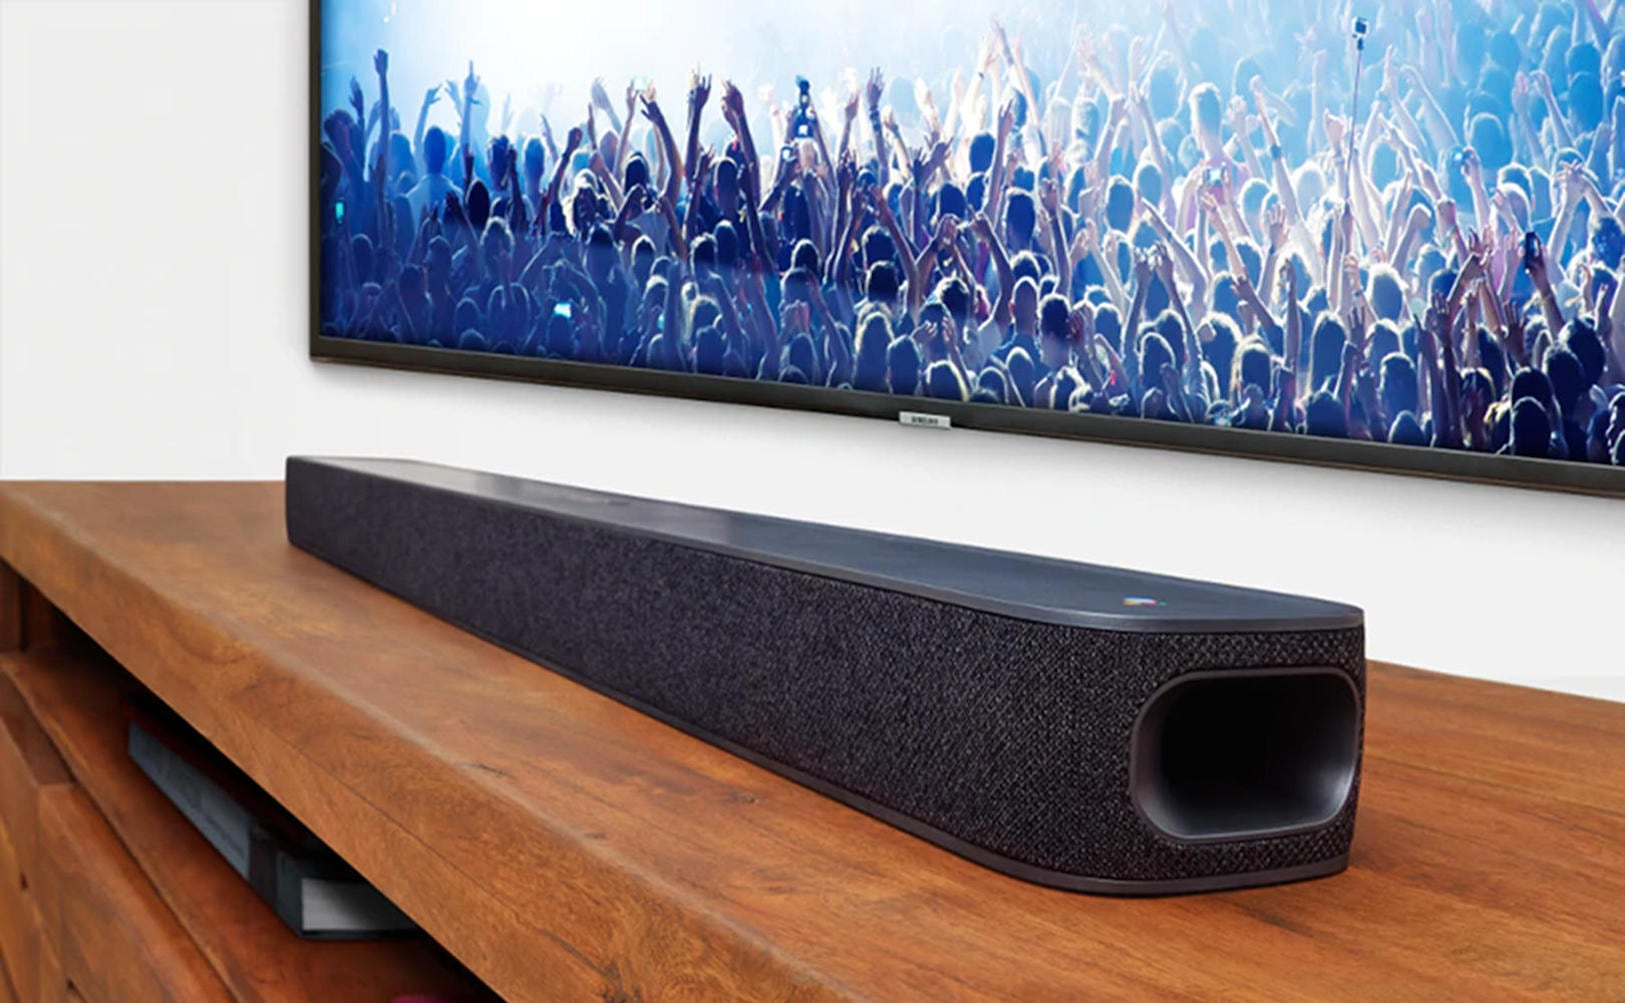 JBL Link Bar Android-Powered Soundbar is loaded with intregration